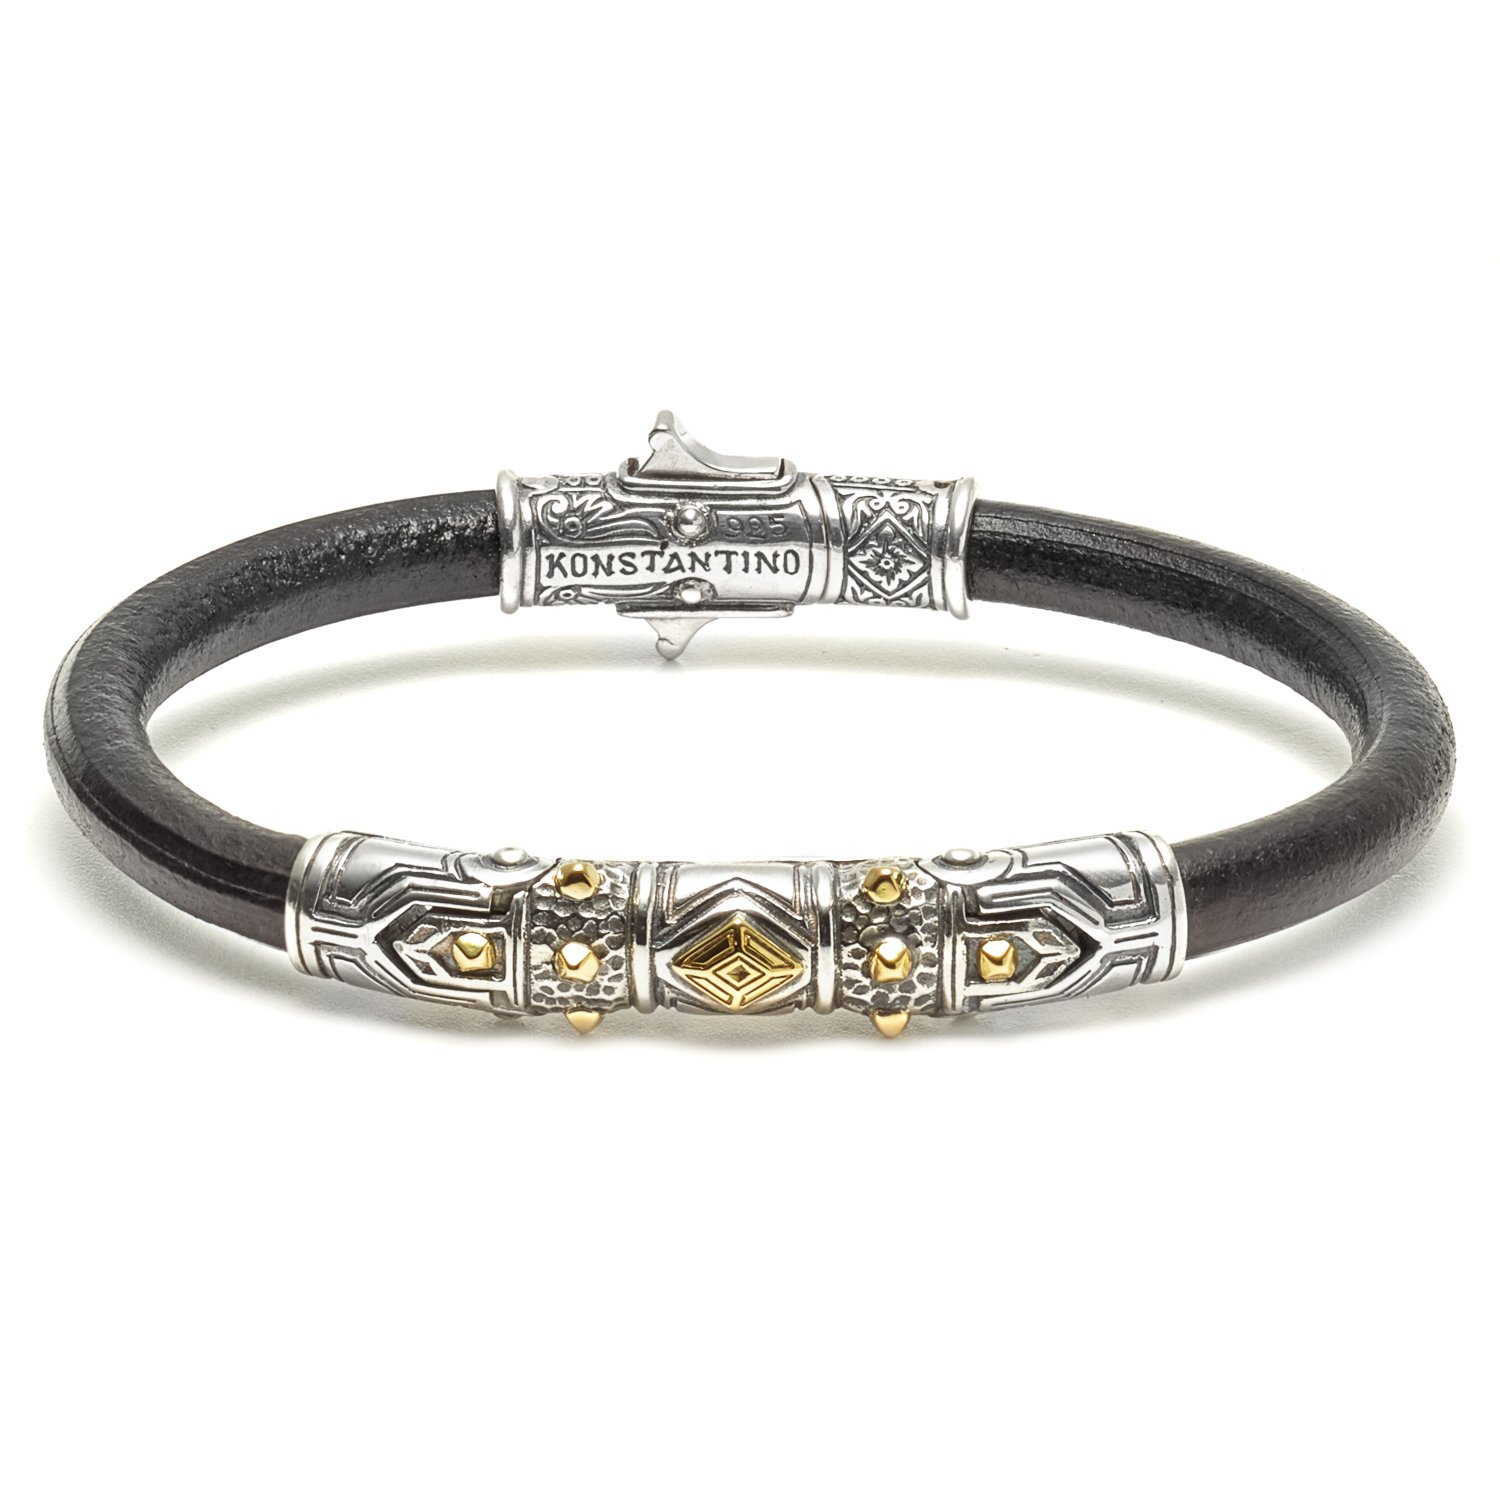 Konstantino Hephaestus Collection Silver and Gold Leather Bracelet